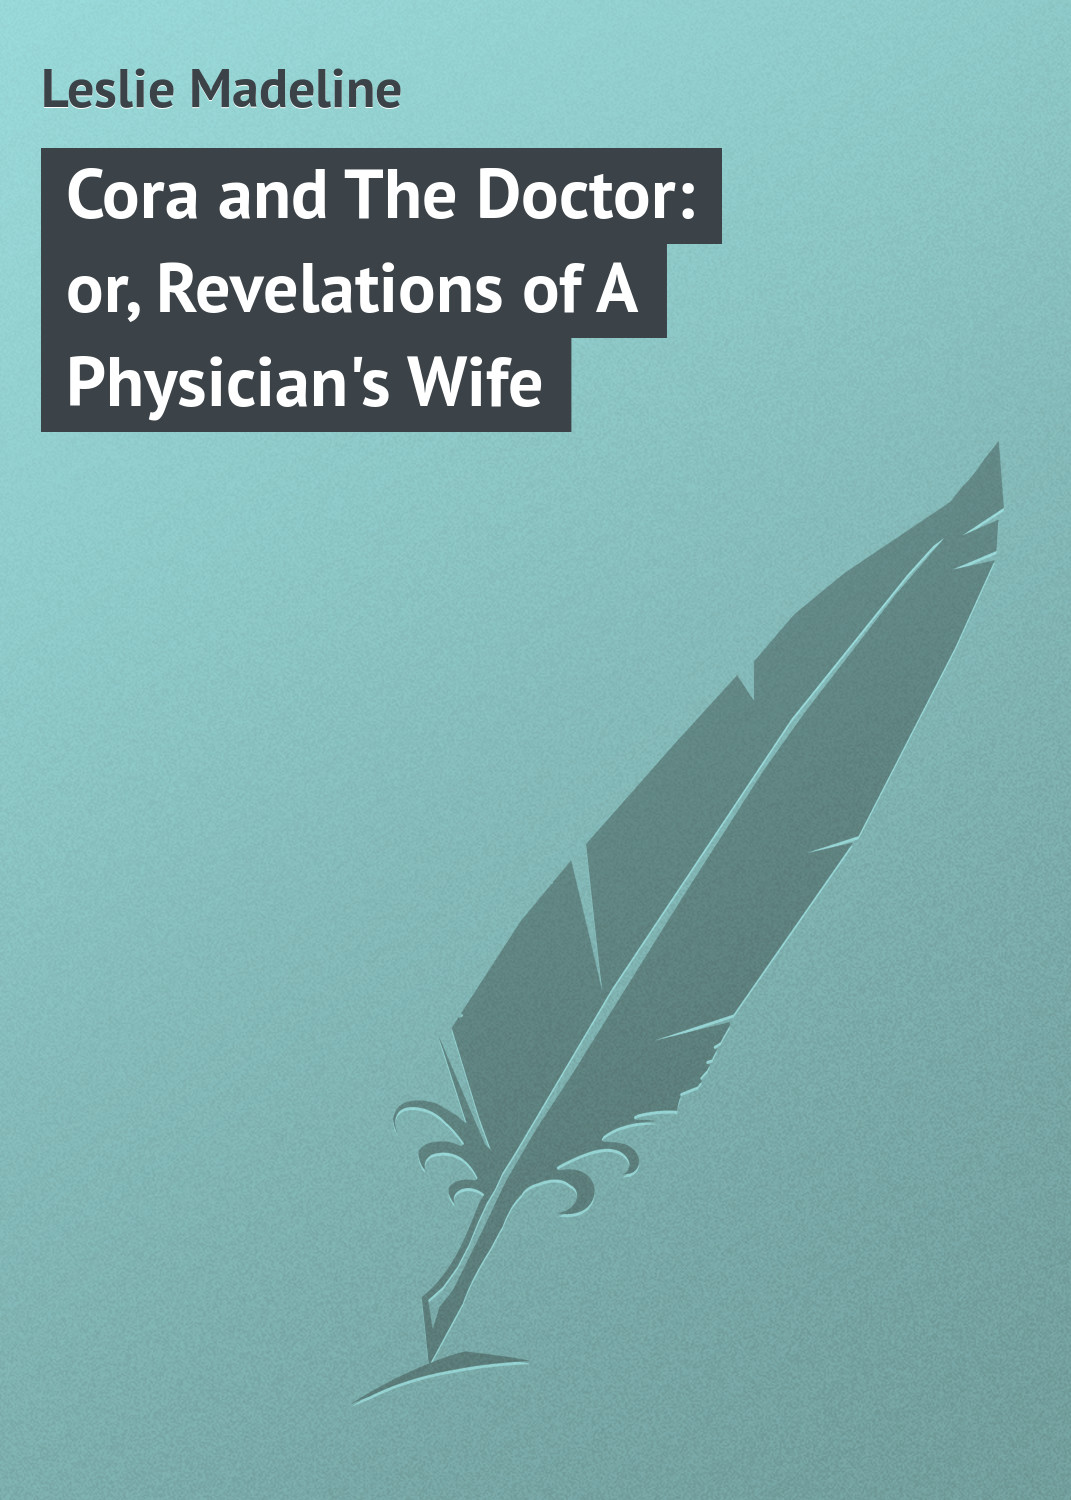 цена Leslie Madeline Cora and The Doctor: or, Revelations of A Physician's Wife онлайн в 2017 году